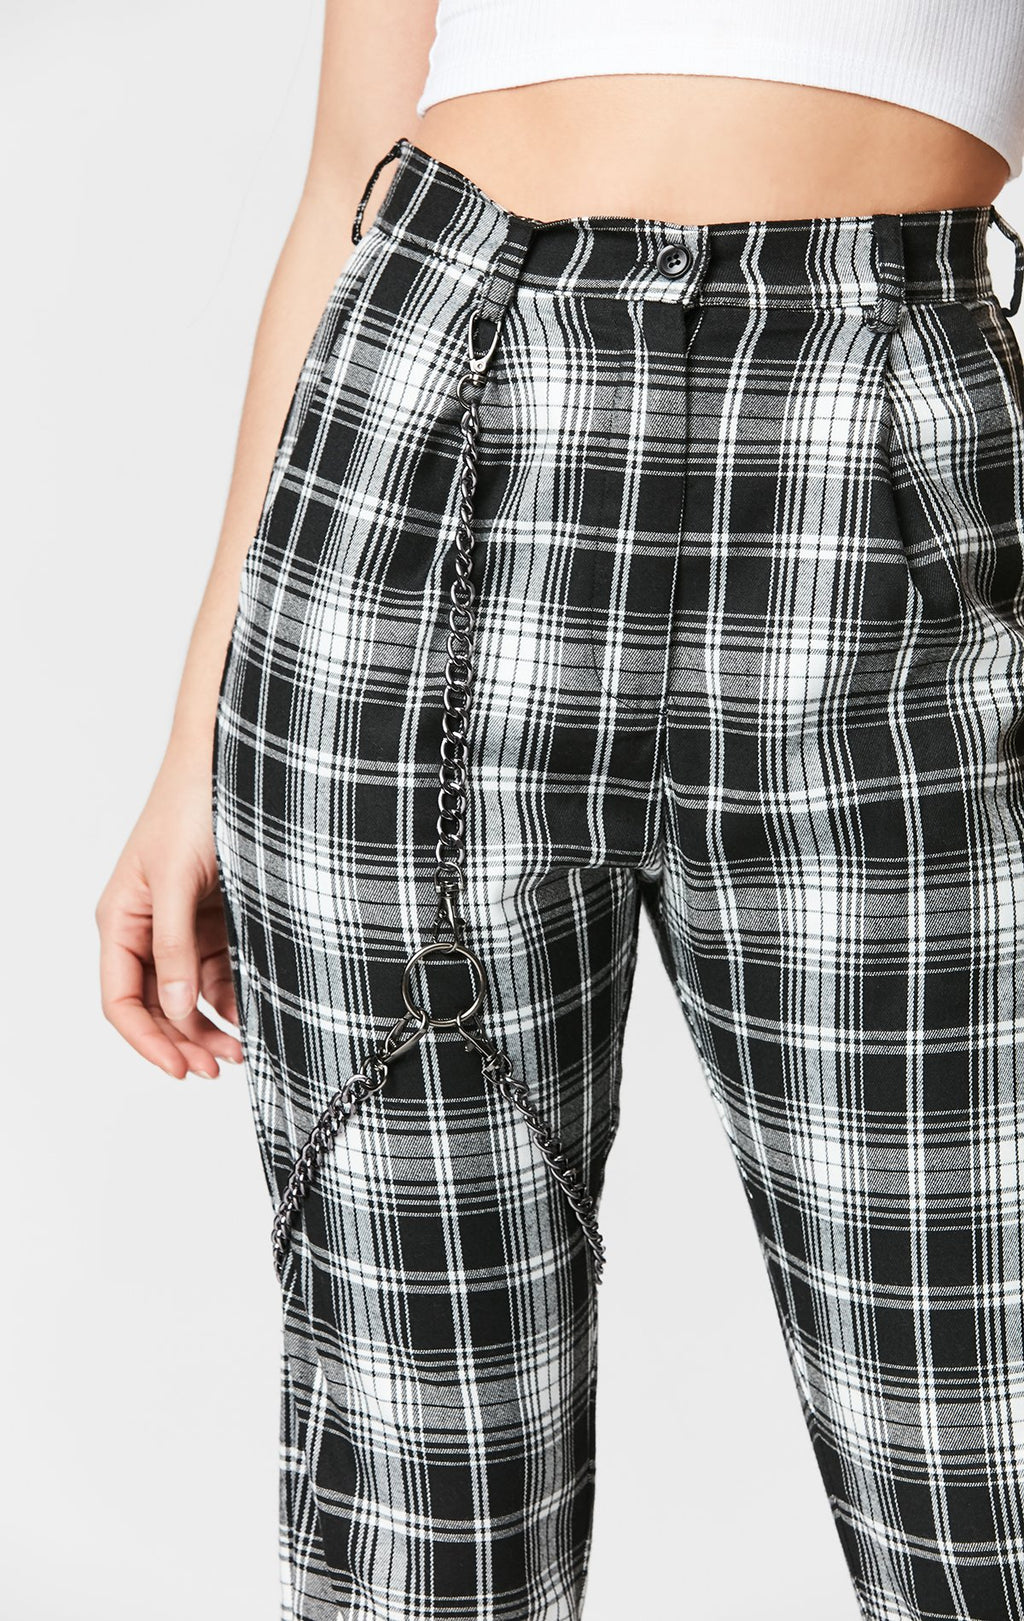 MAGS & PYE PLAID HARNESS PANT DETAIL